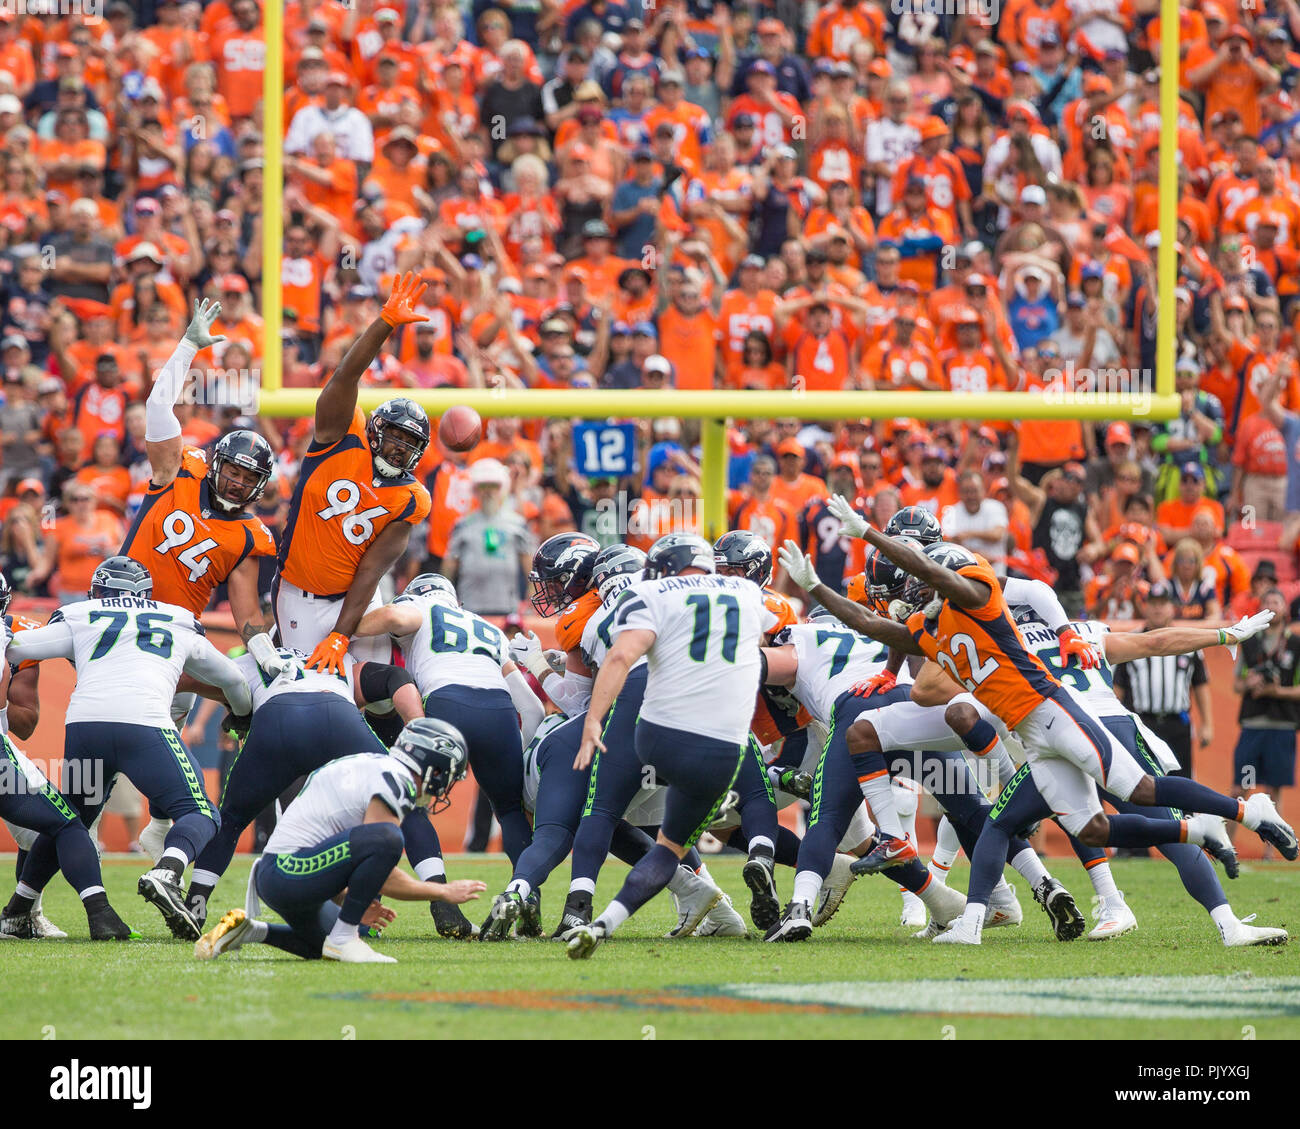 Denver, USA. September 09, 2018: Seattle Seahawks Kicker